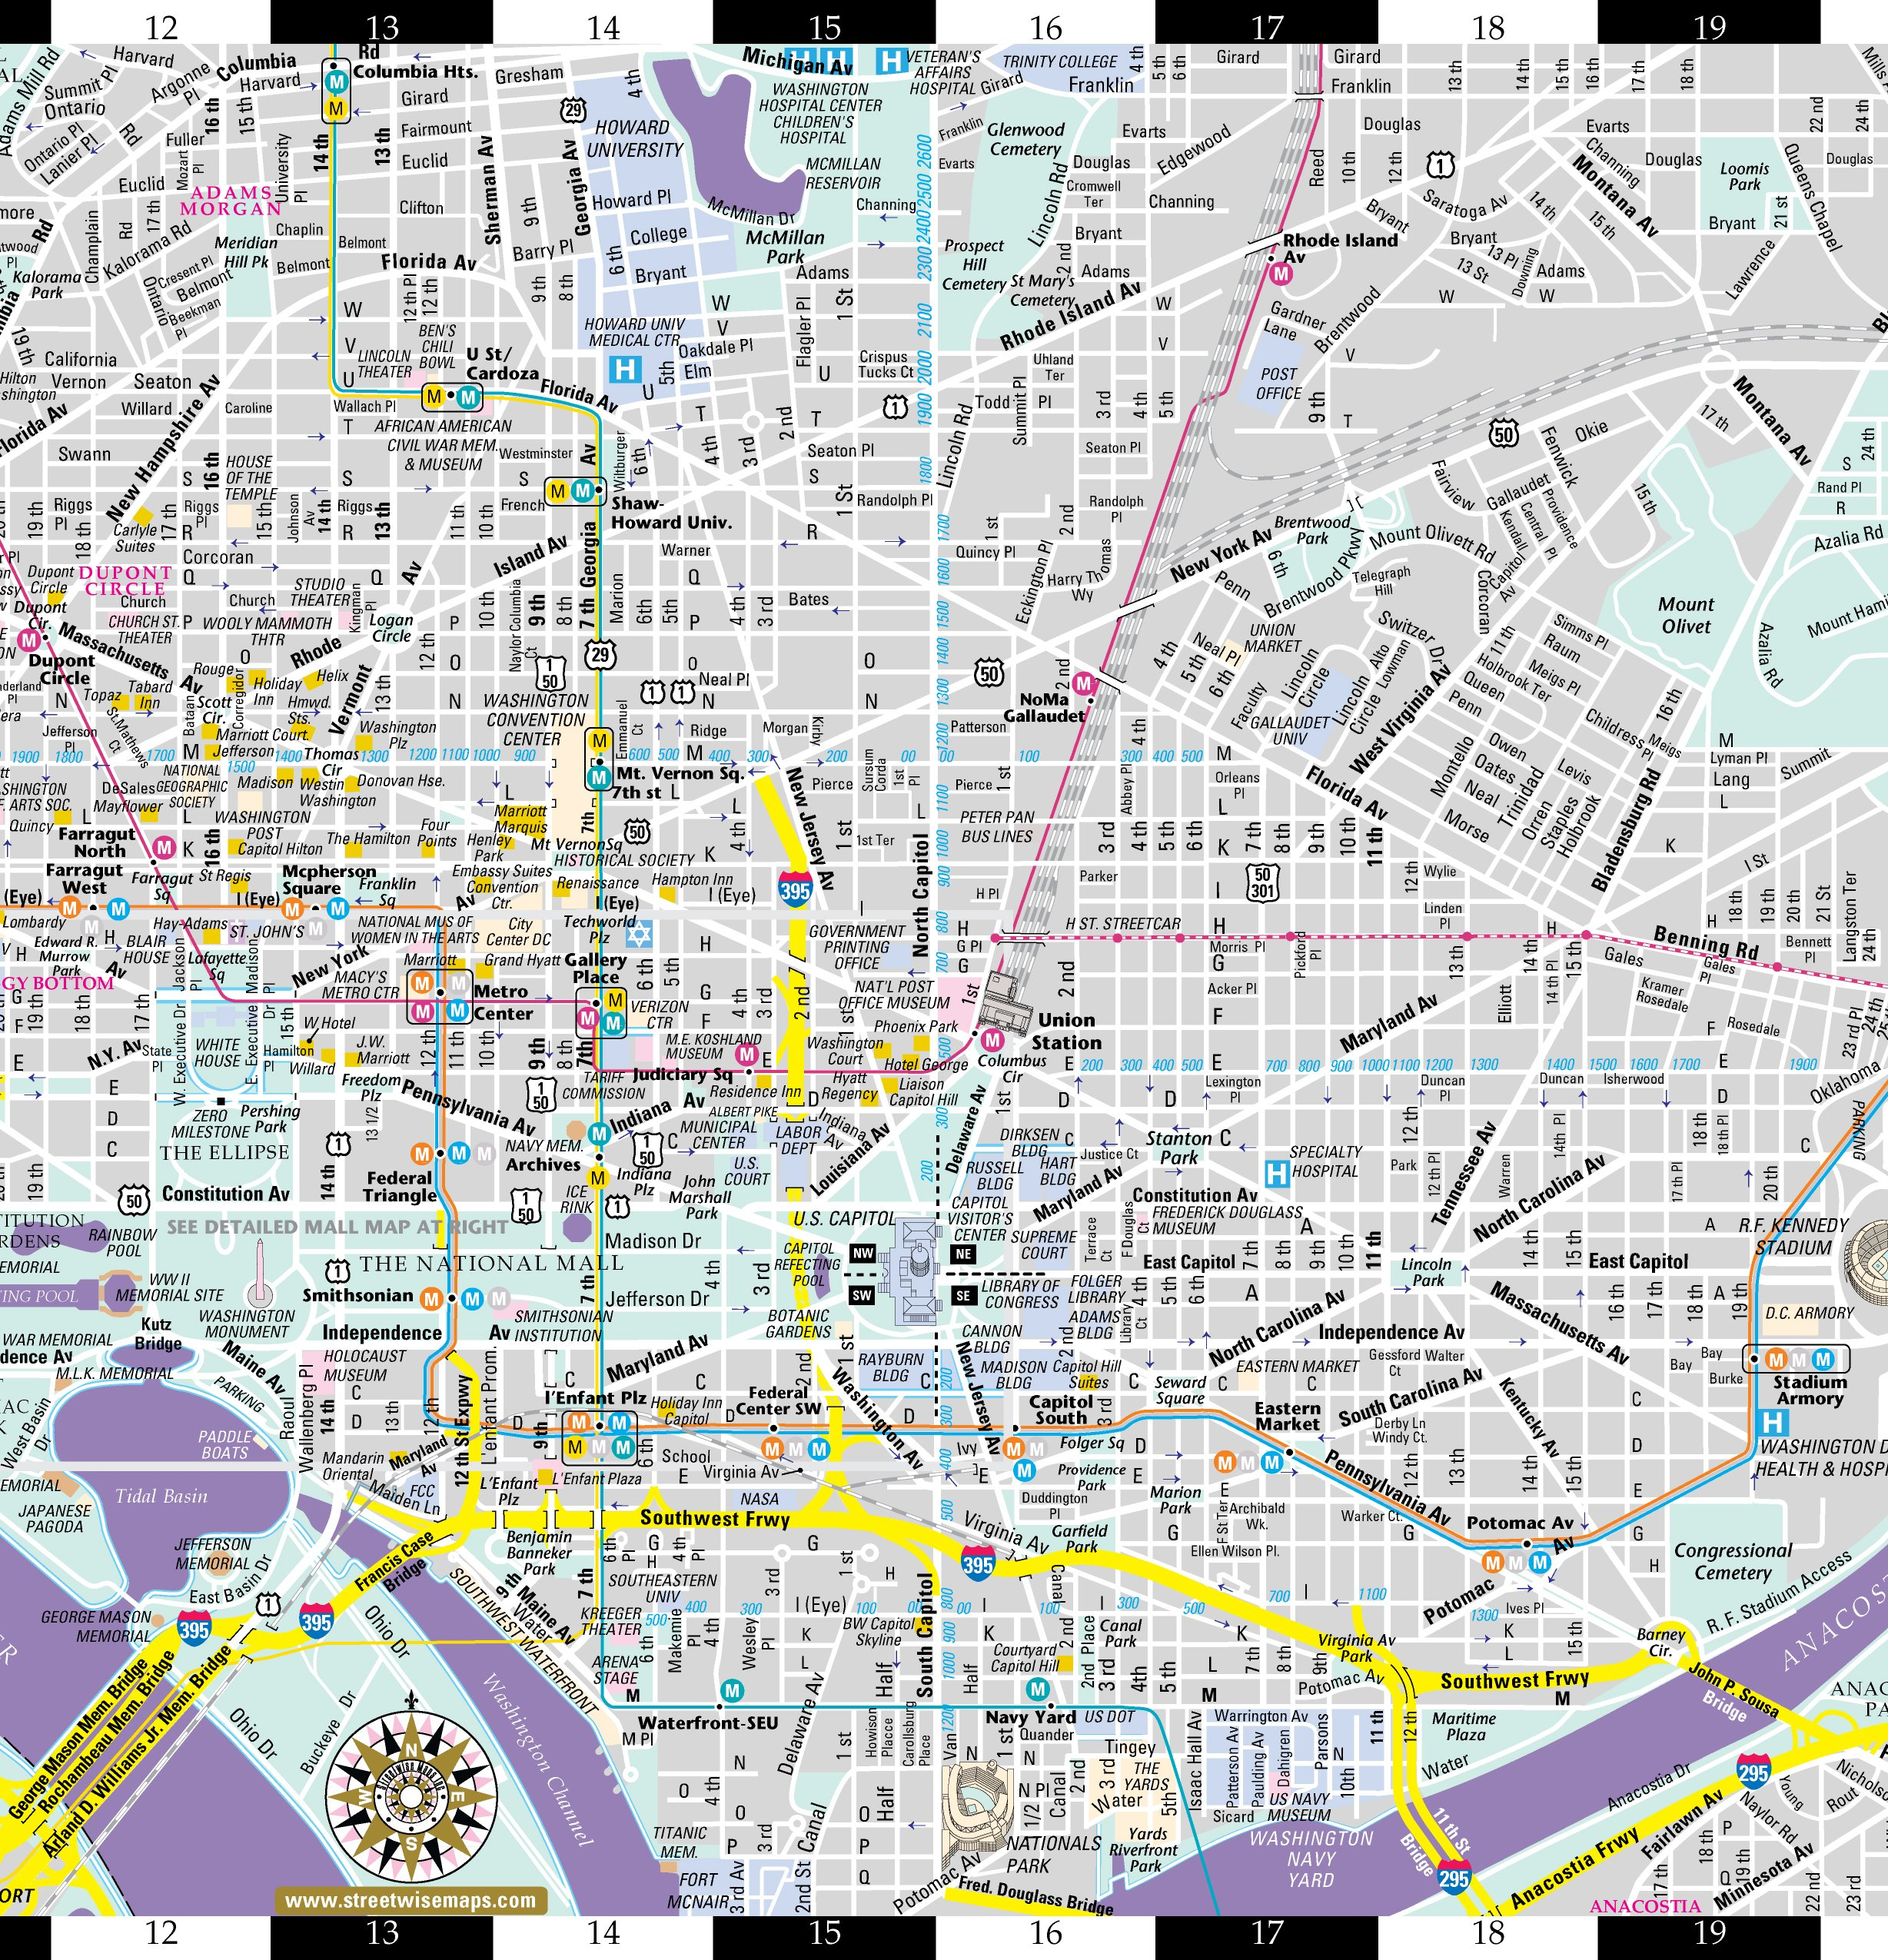 Washington Dc Map Tourist Printable | Travel Maps And Major Tourist - Printable Map Of Washington Dc Attractions